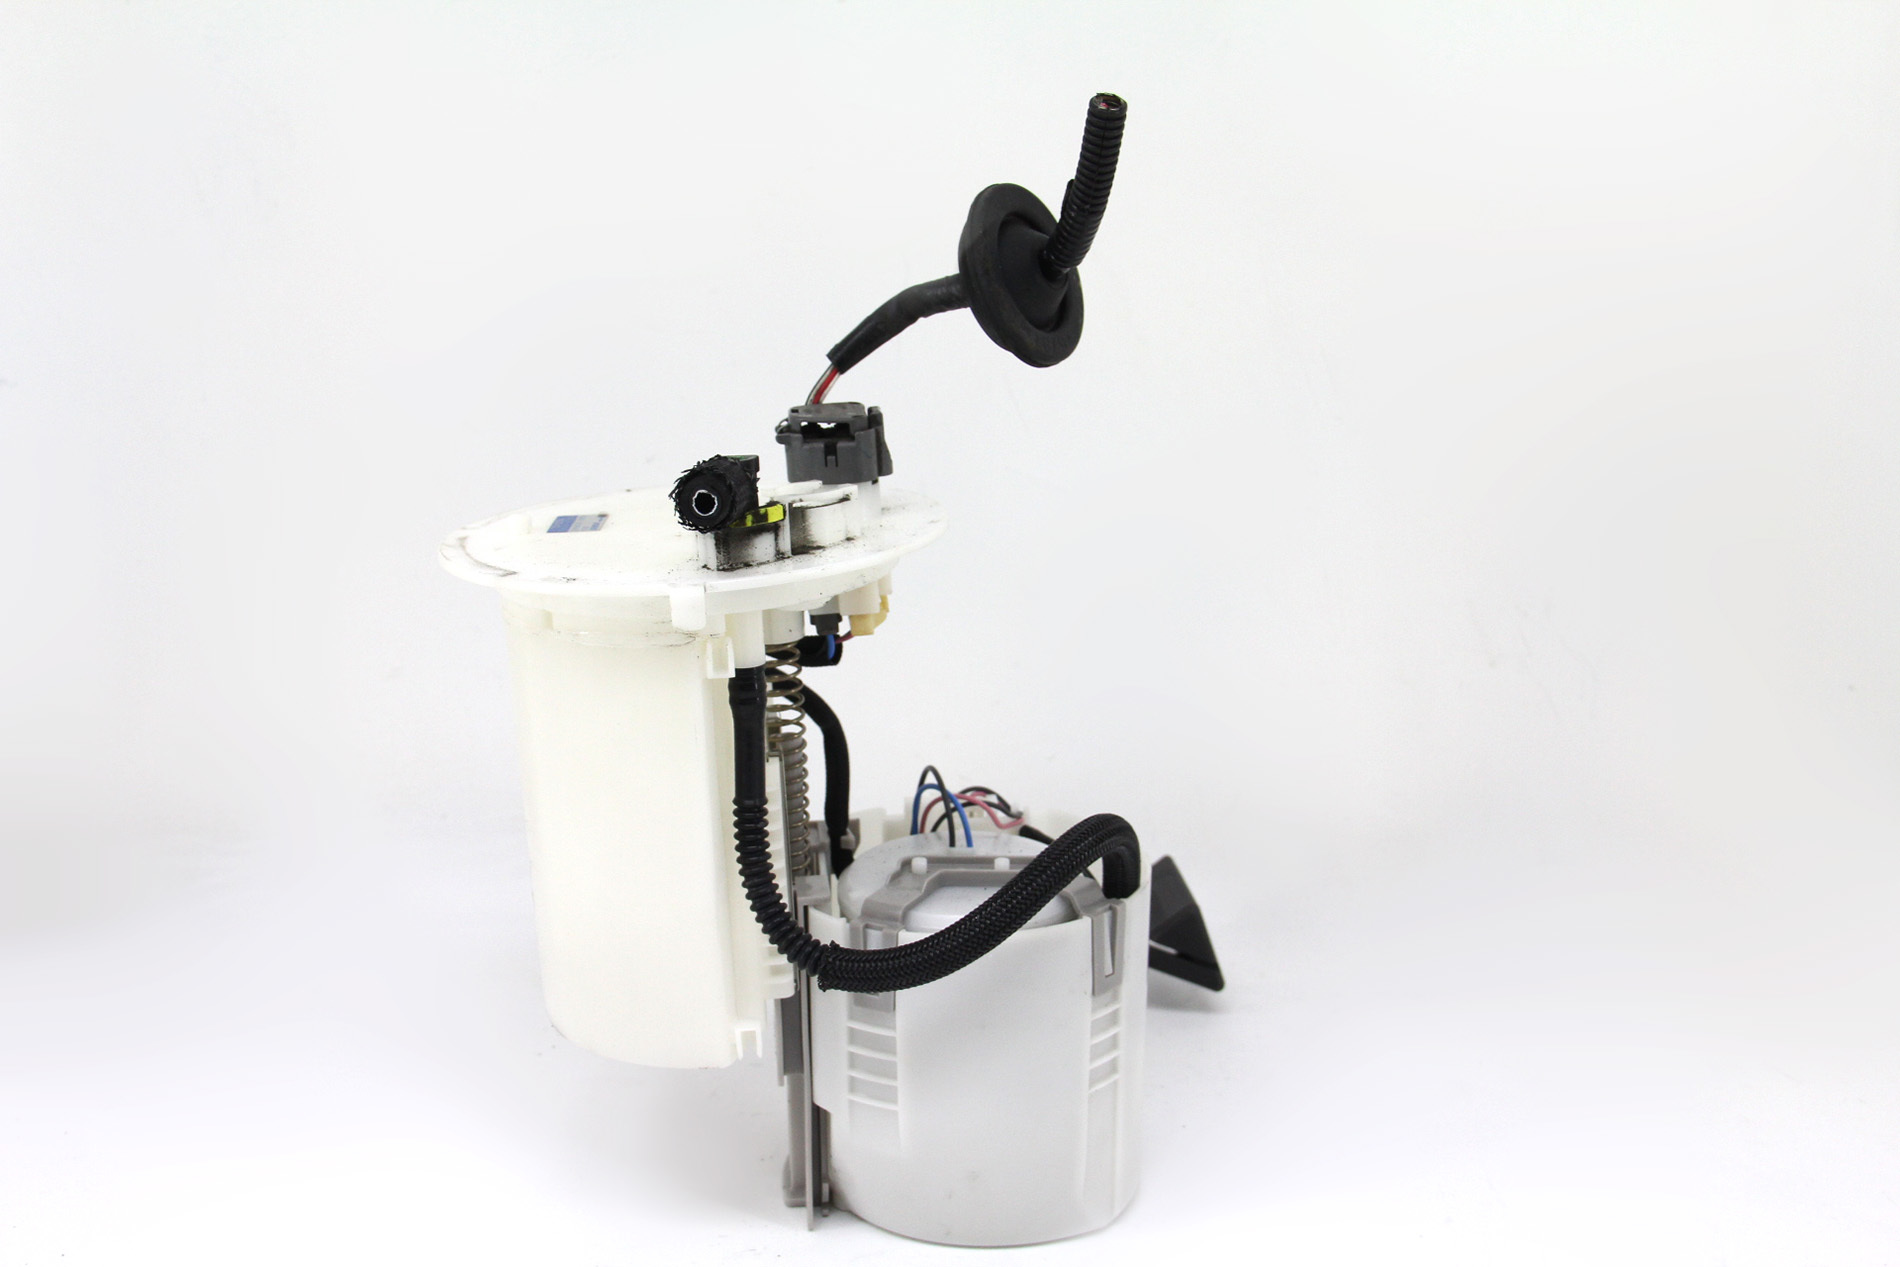 ... Toyota Prius Fuel Filter Gas Pump Suction Assembly 77020-47080 OEM 10-12